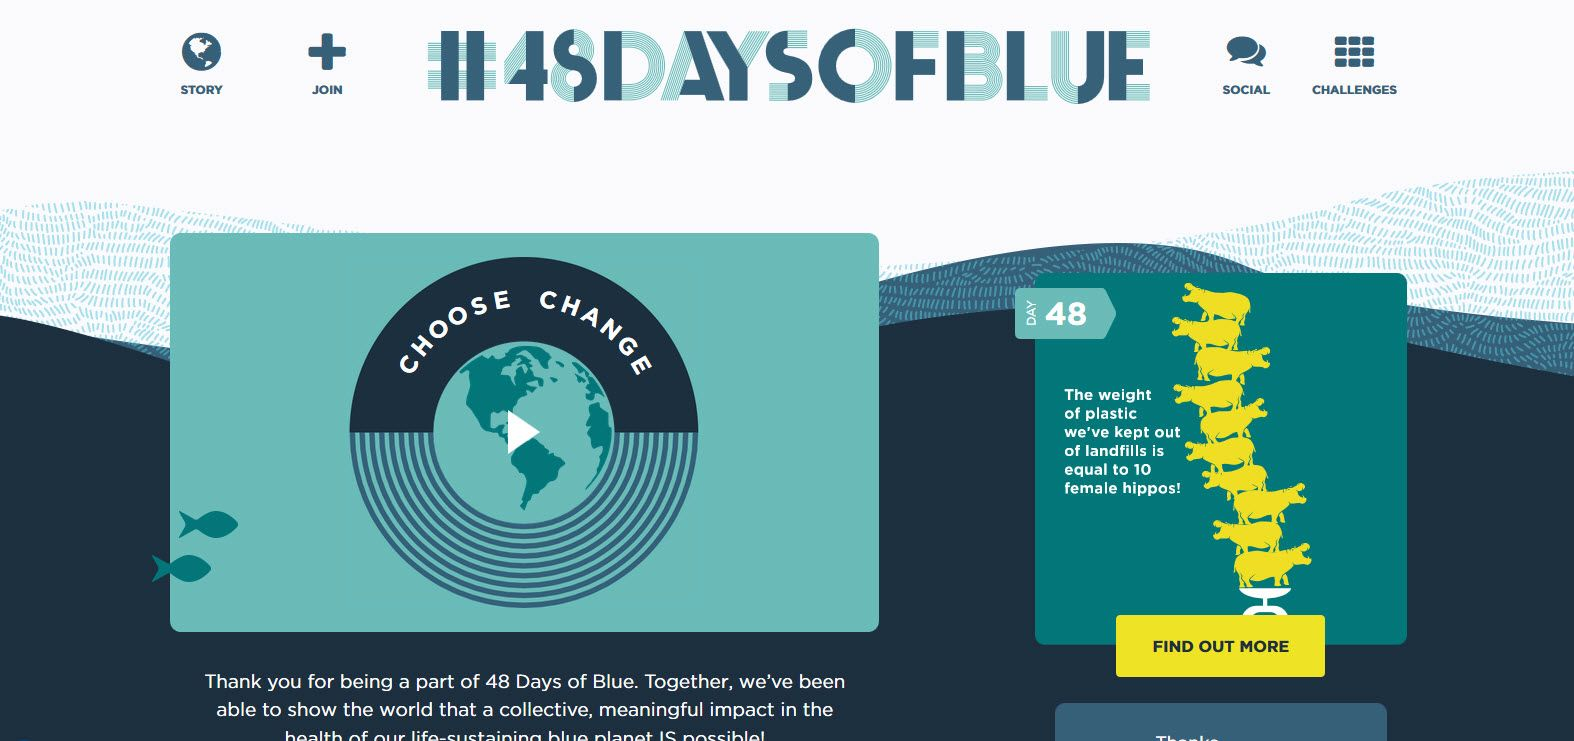 Brilliant use of CSS animation, text rotation, and multiple background images to create 48daysofblue.com #48daysofblue #CSS3 #webdesign